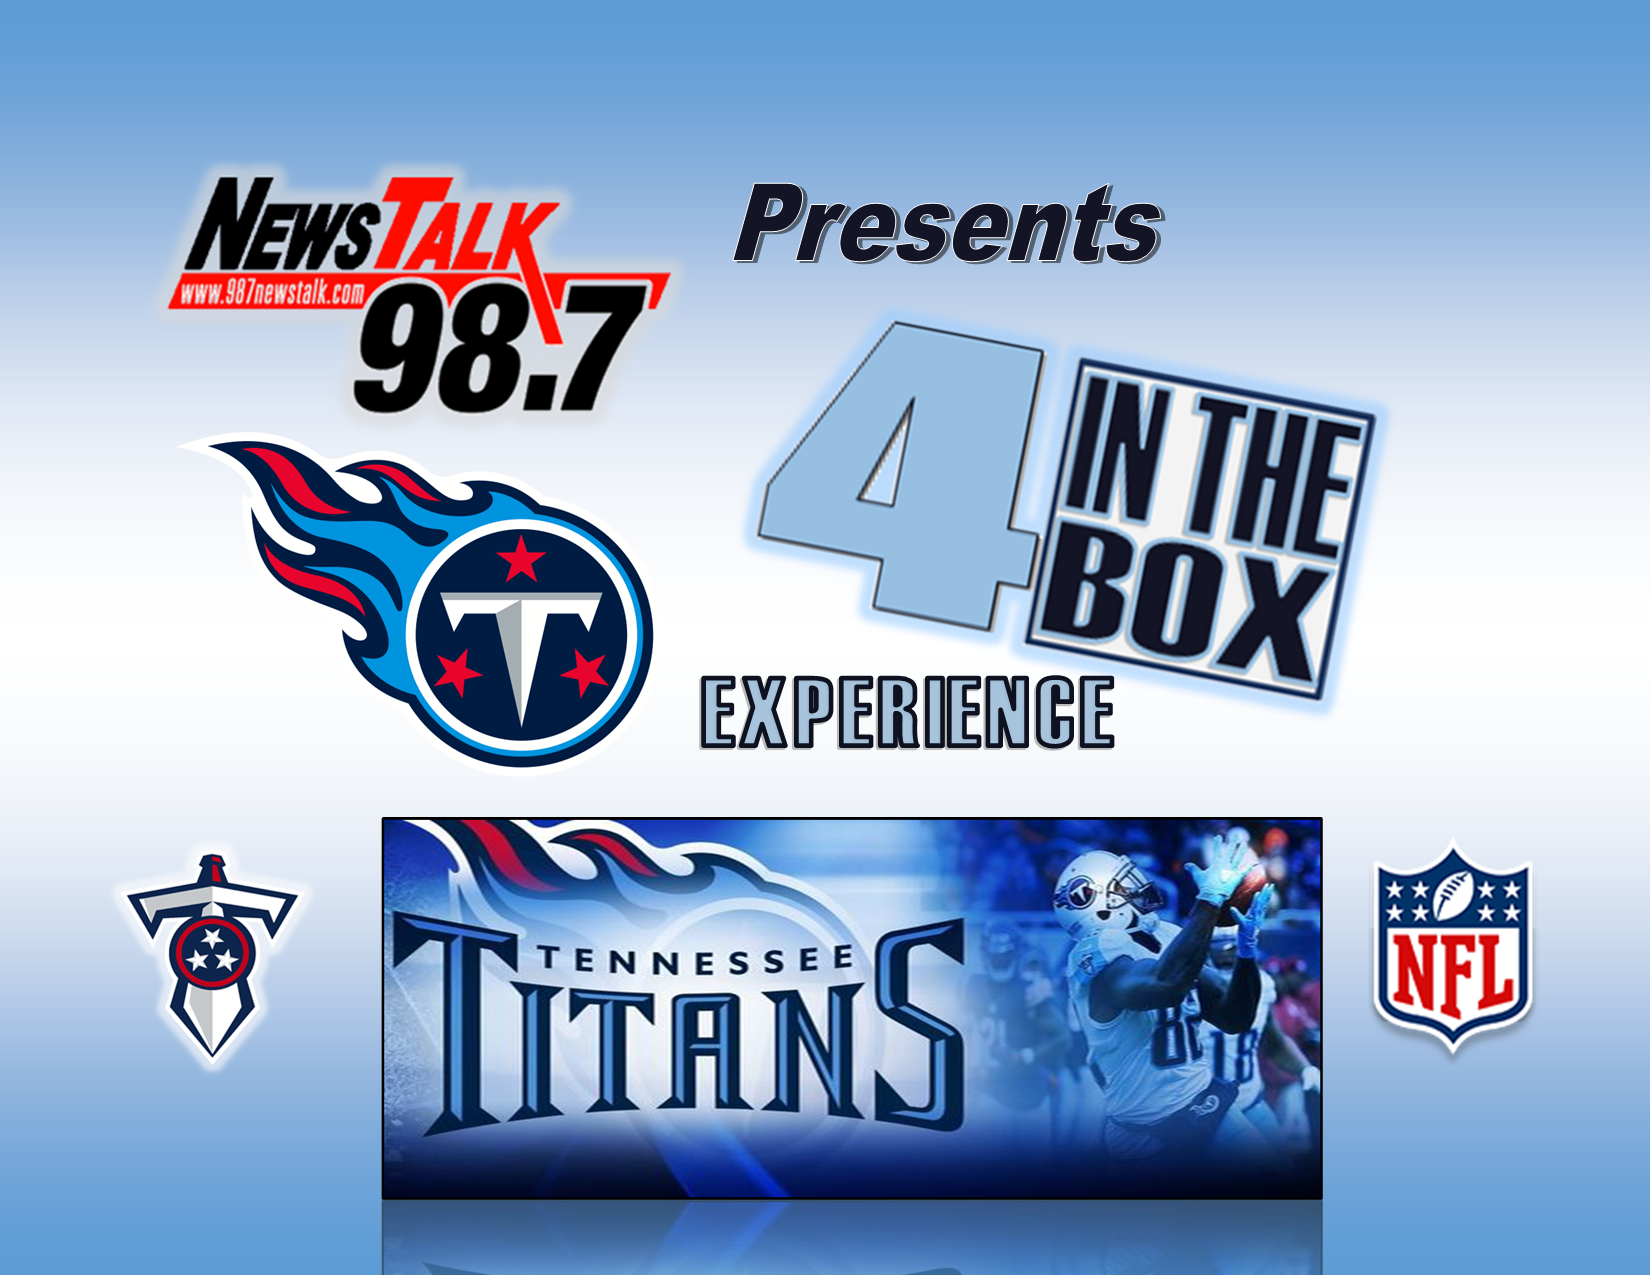 4 in the Box Tennessee Titans Experience